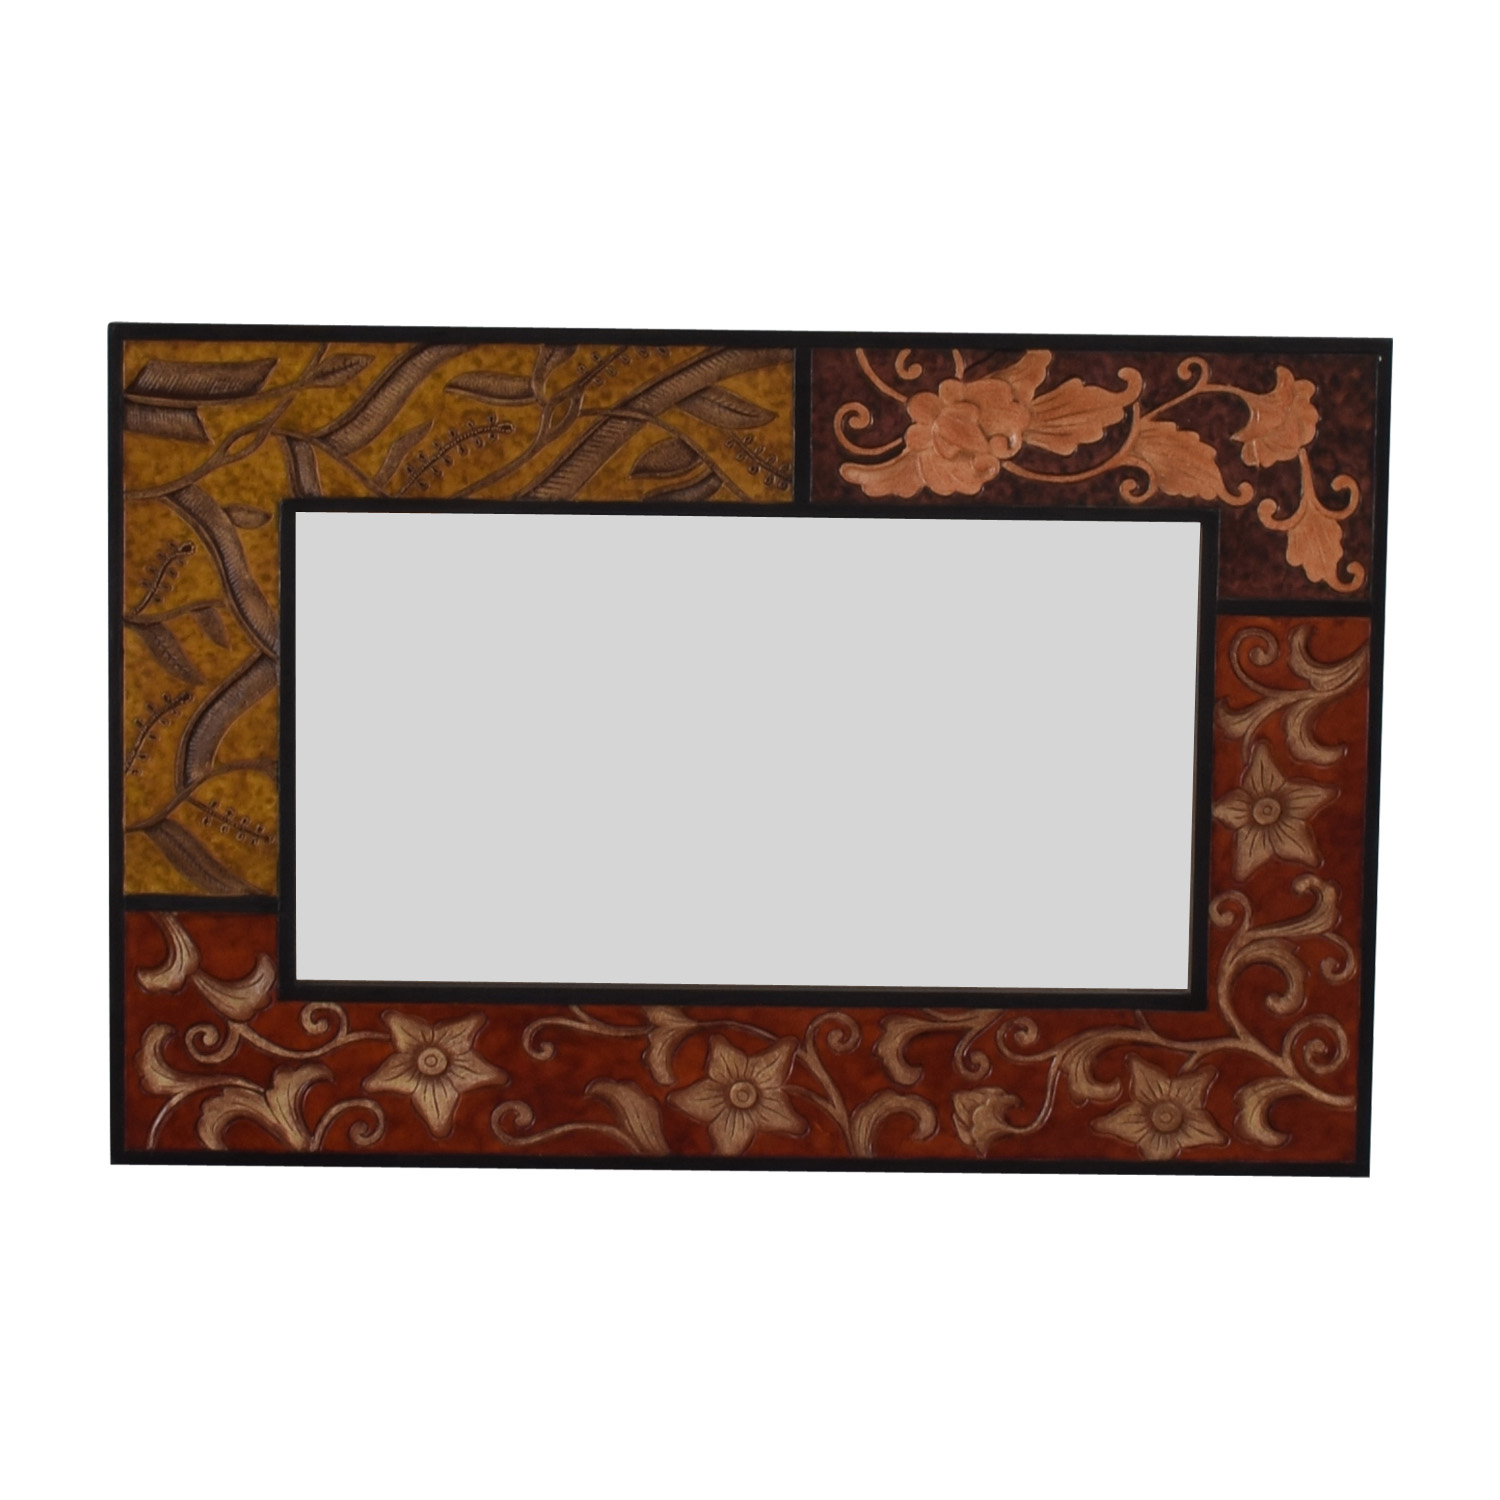 Pier 1 Pier 1 Panel Carved Decorative Mirror brown/yellow